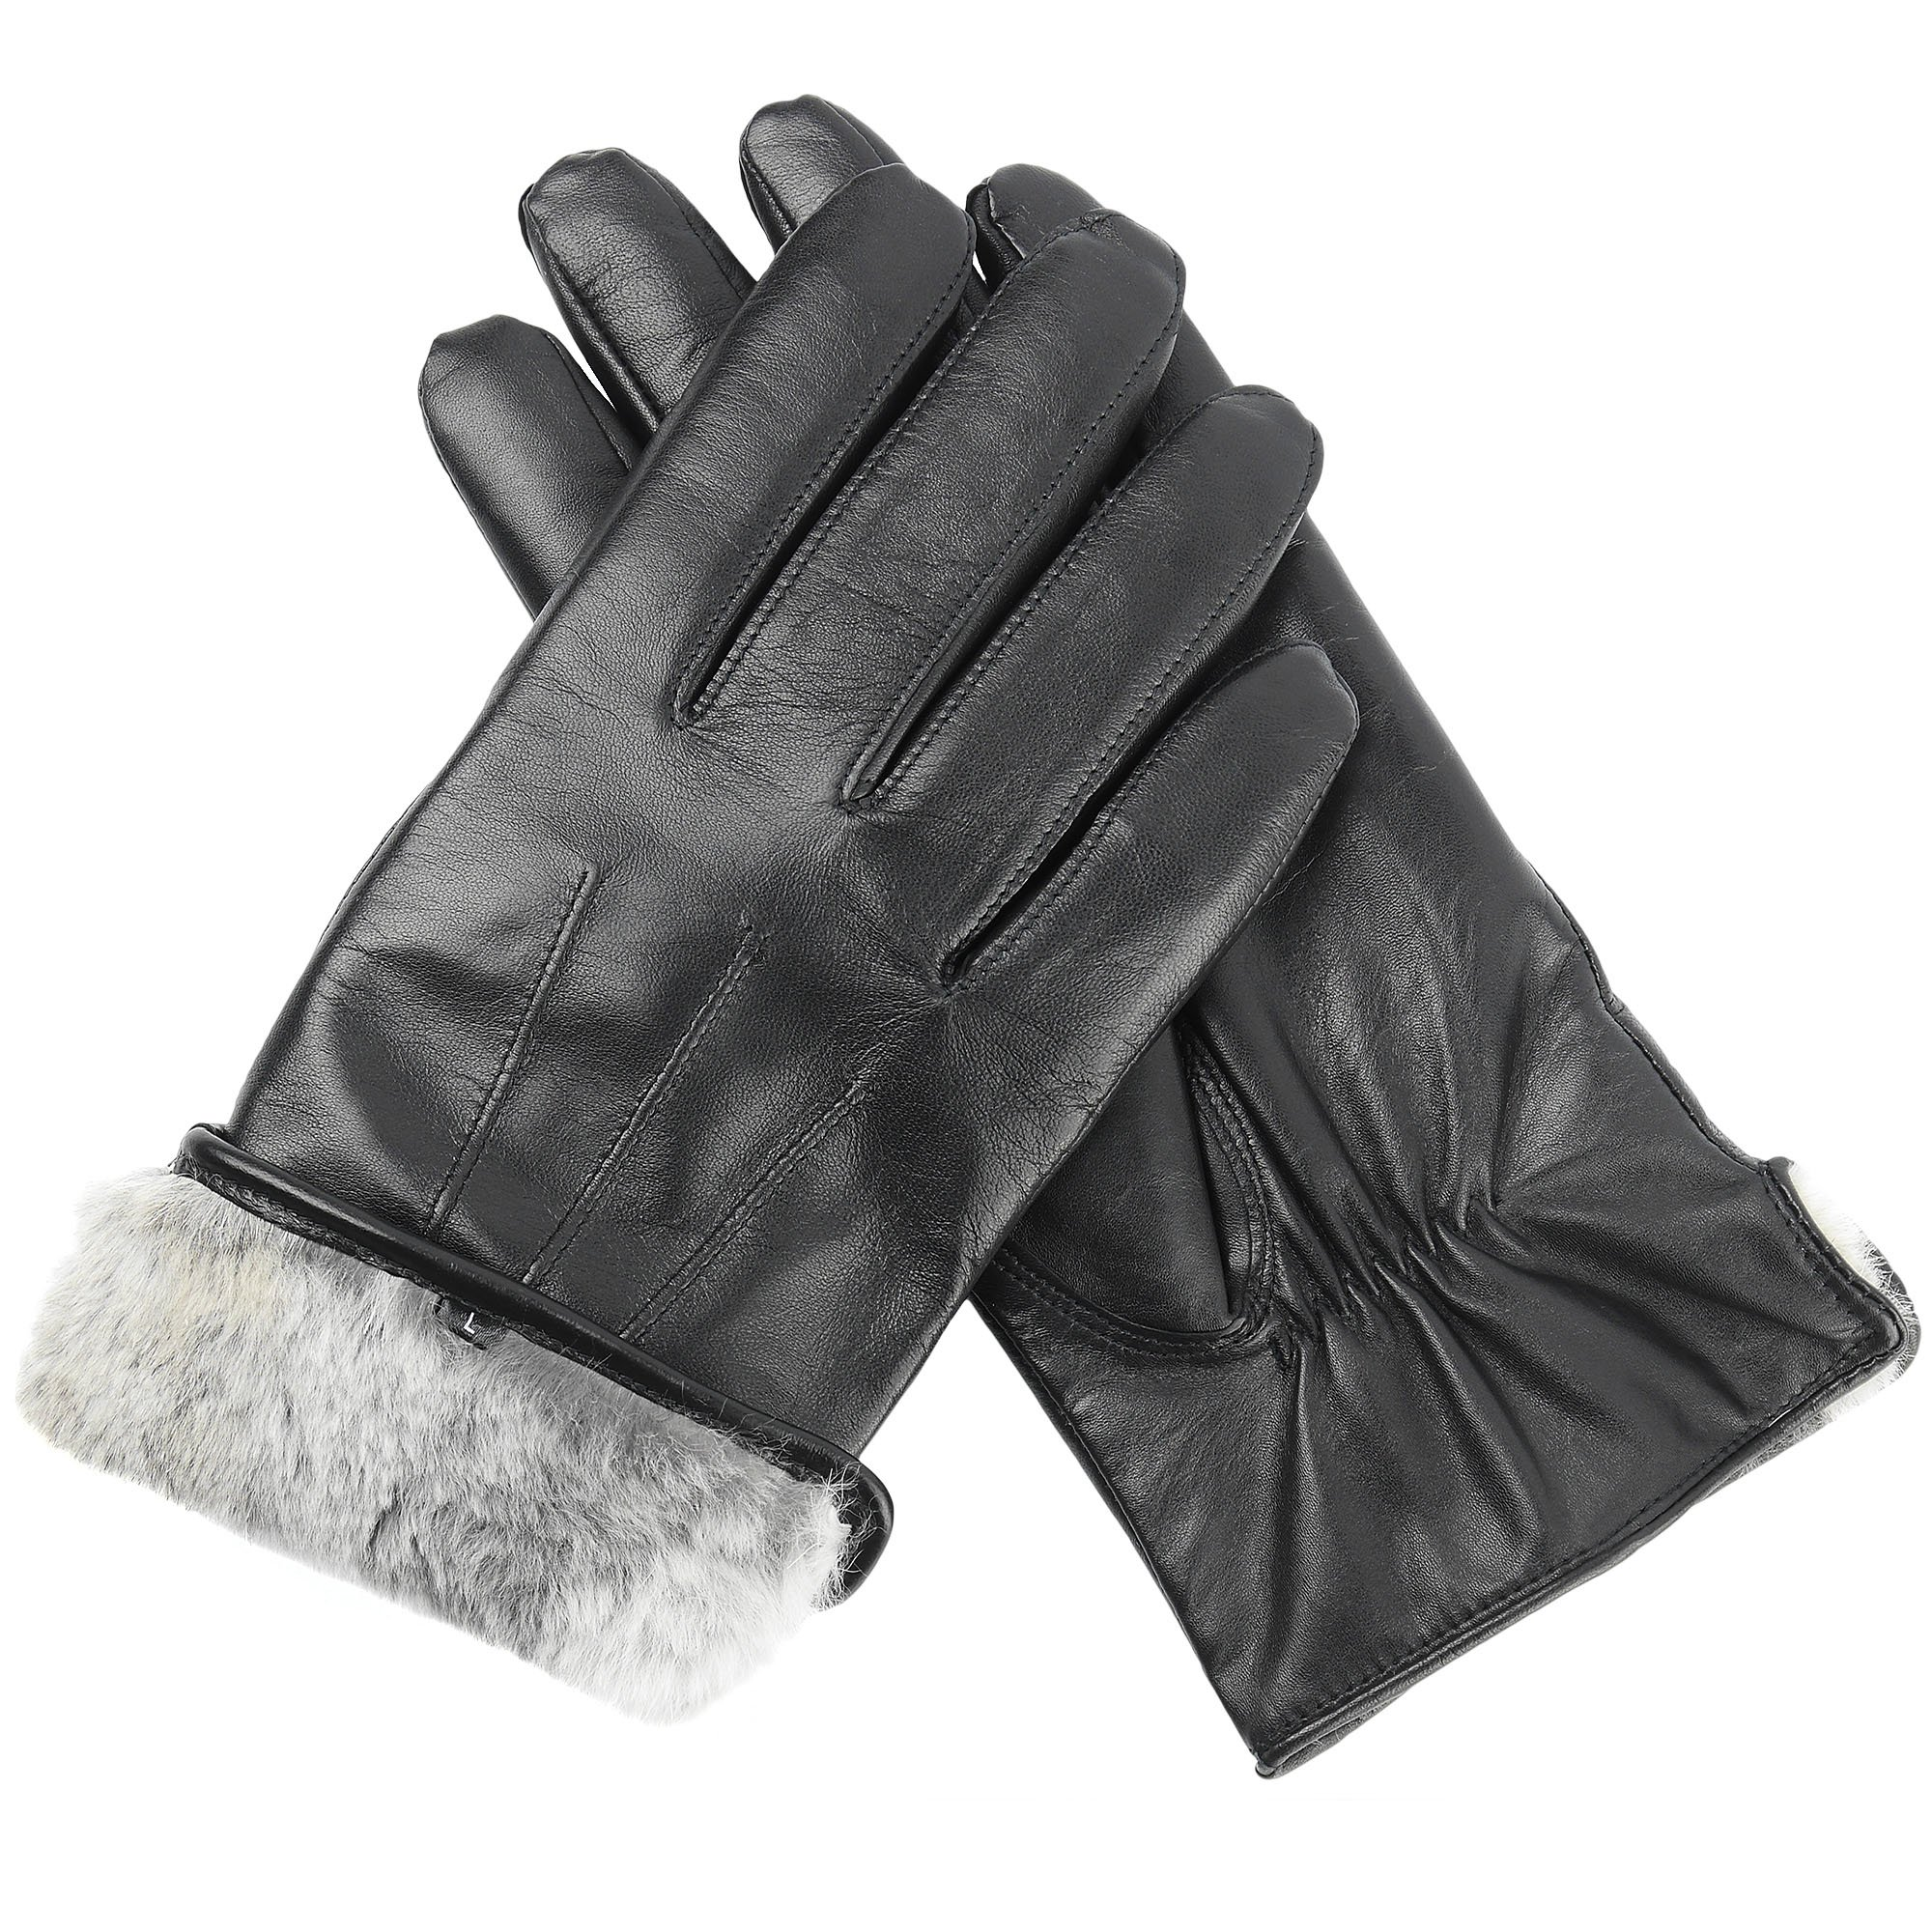 Candor and Class Men's Sheepskin Leather Gloves with Rabbit Fur Lining (Black, Large)